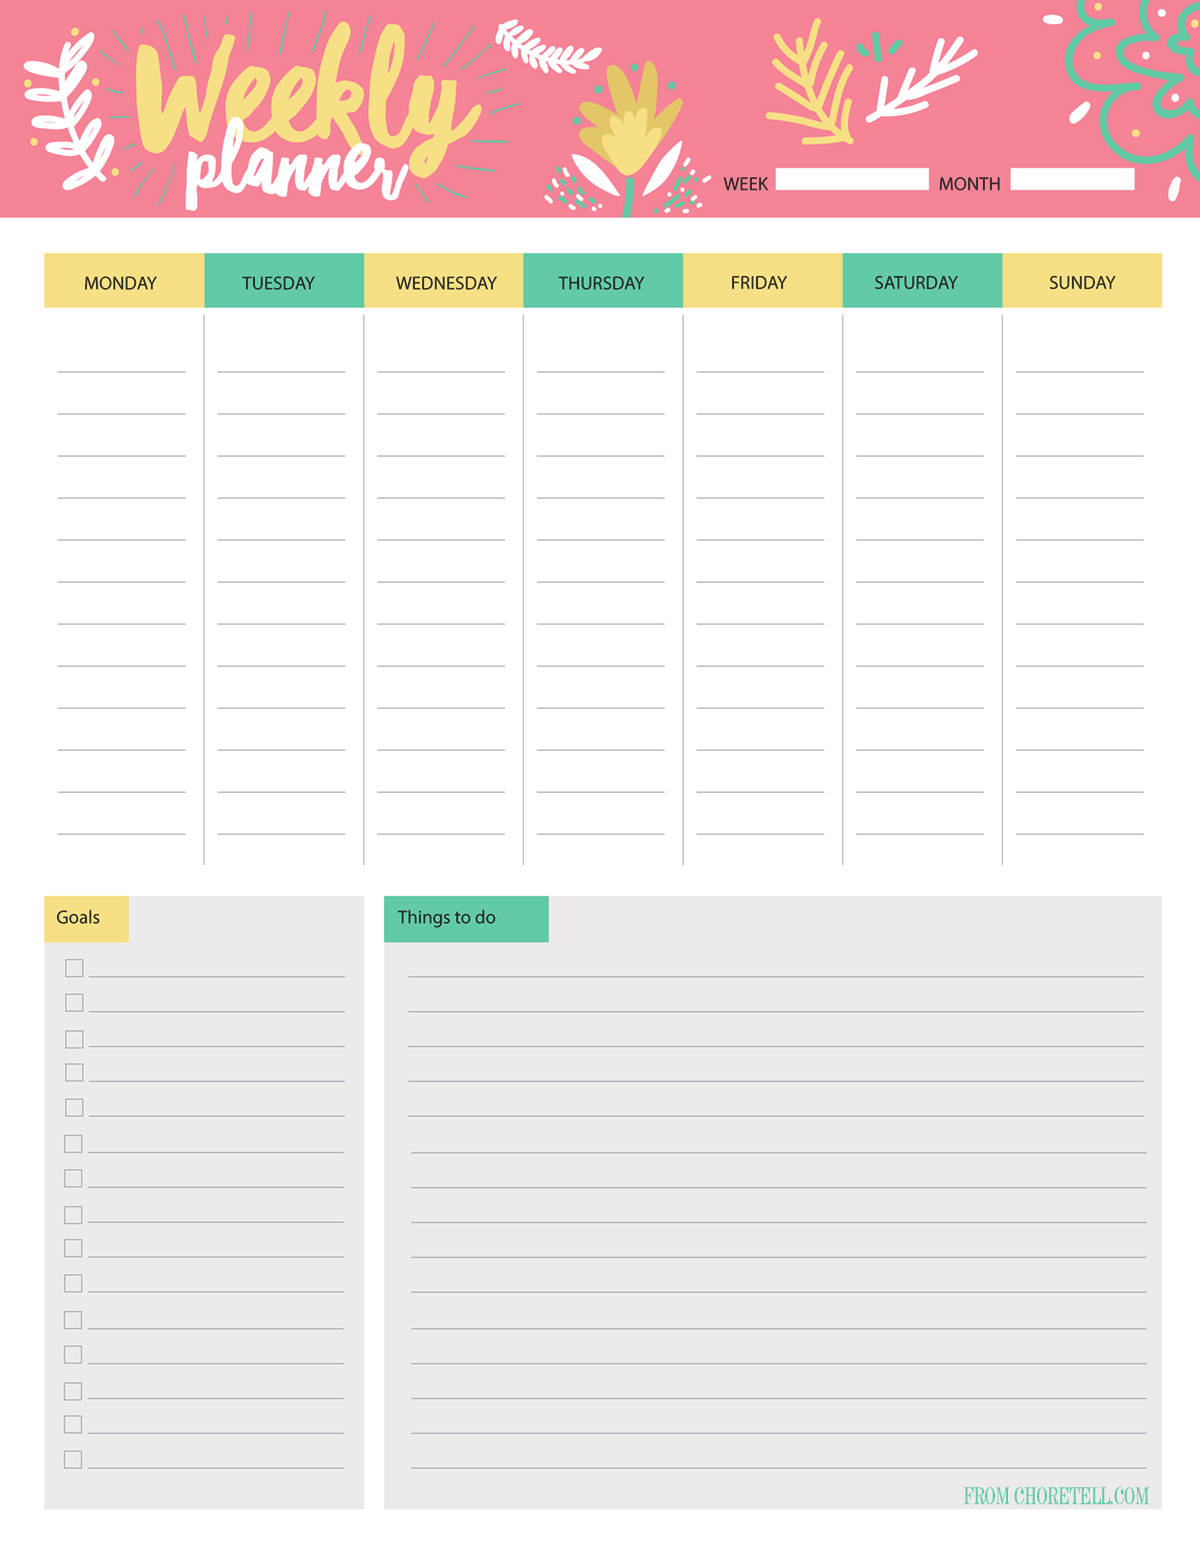 Weekly Calendar With To Do List : Weekly planner to do list free download printable